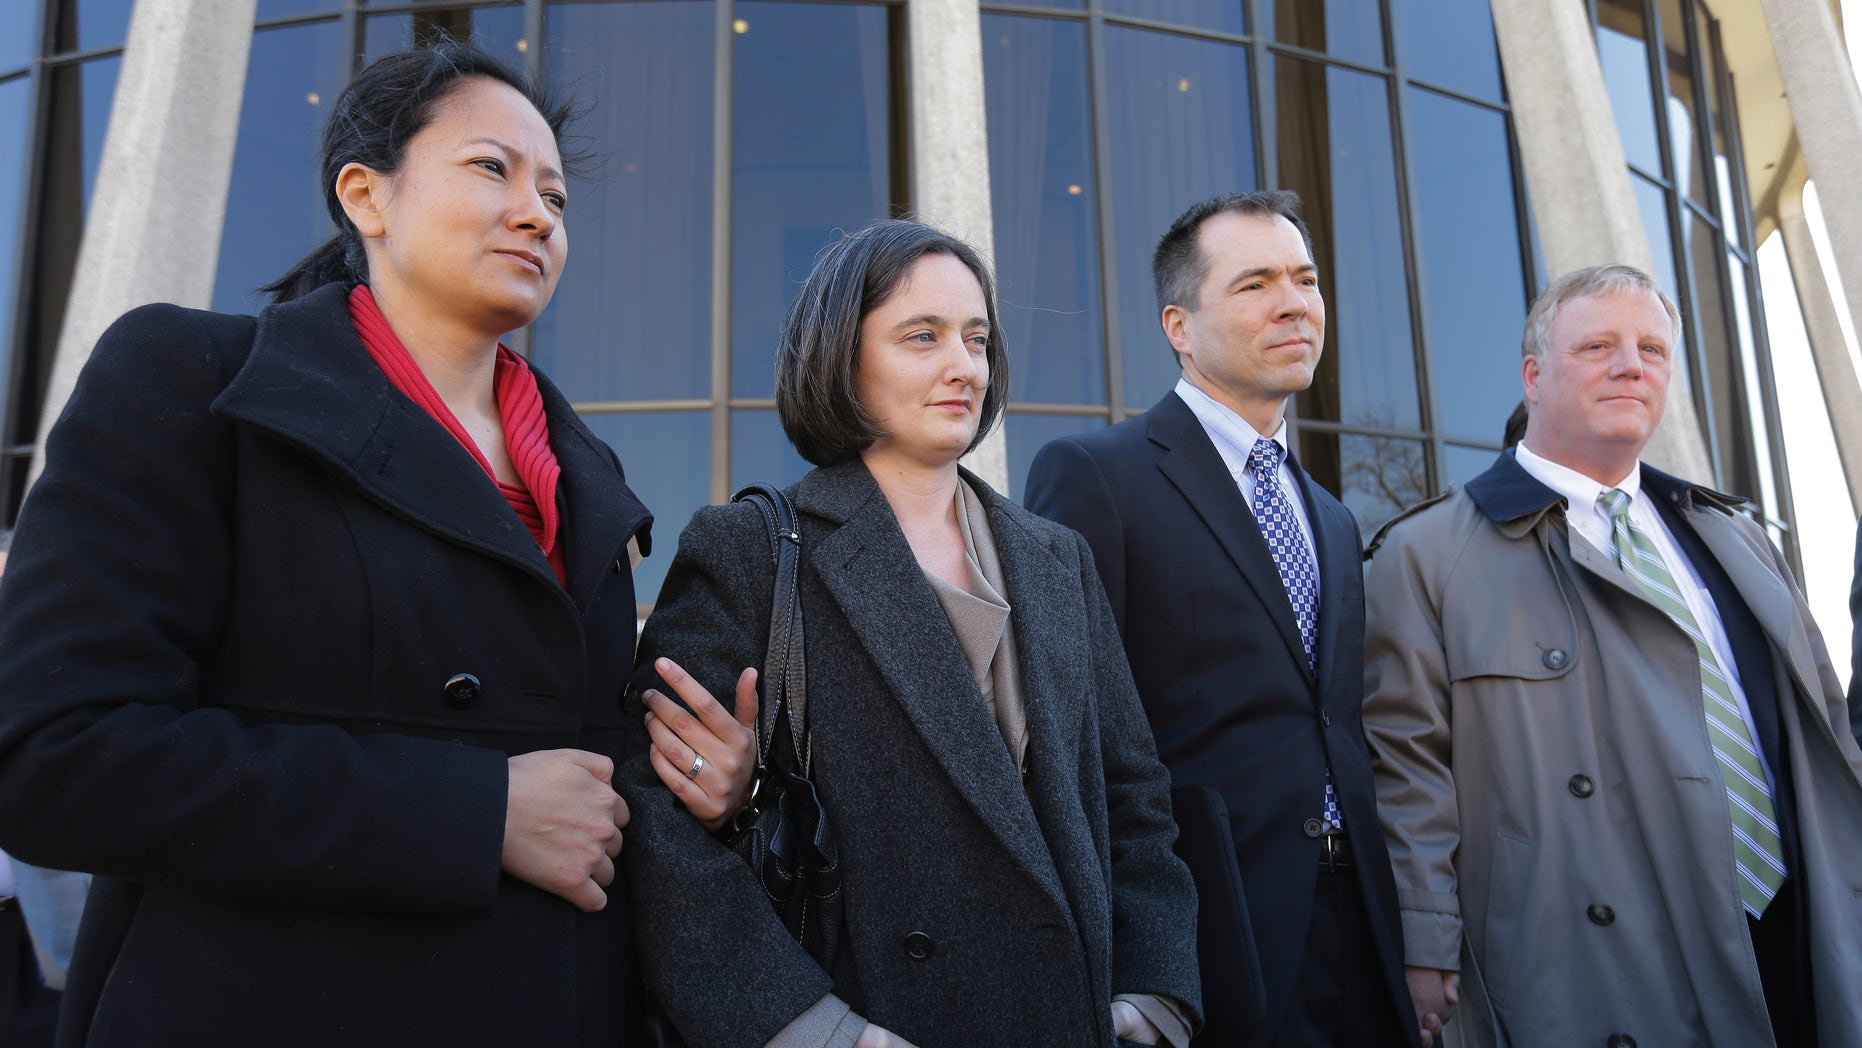 Feb. 14, 2014: The two homosexual couples who challenged Texas' ban on same-sex marriage, Cleopatra De Leon, left, and partner, Nicole Dimetman, second from left, and Victor Holmes and partner Mark Phariss, right, talk with media.